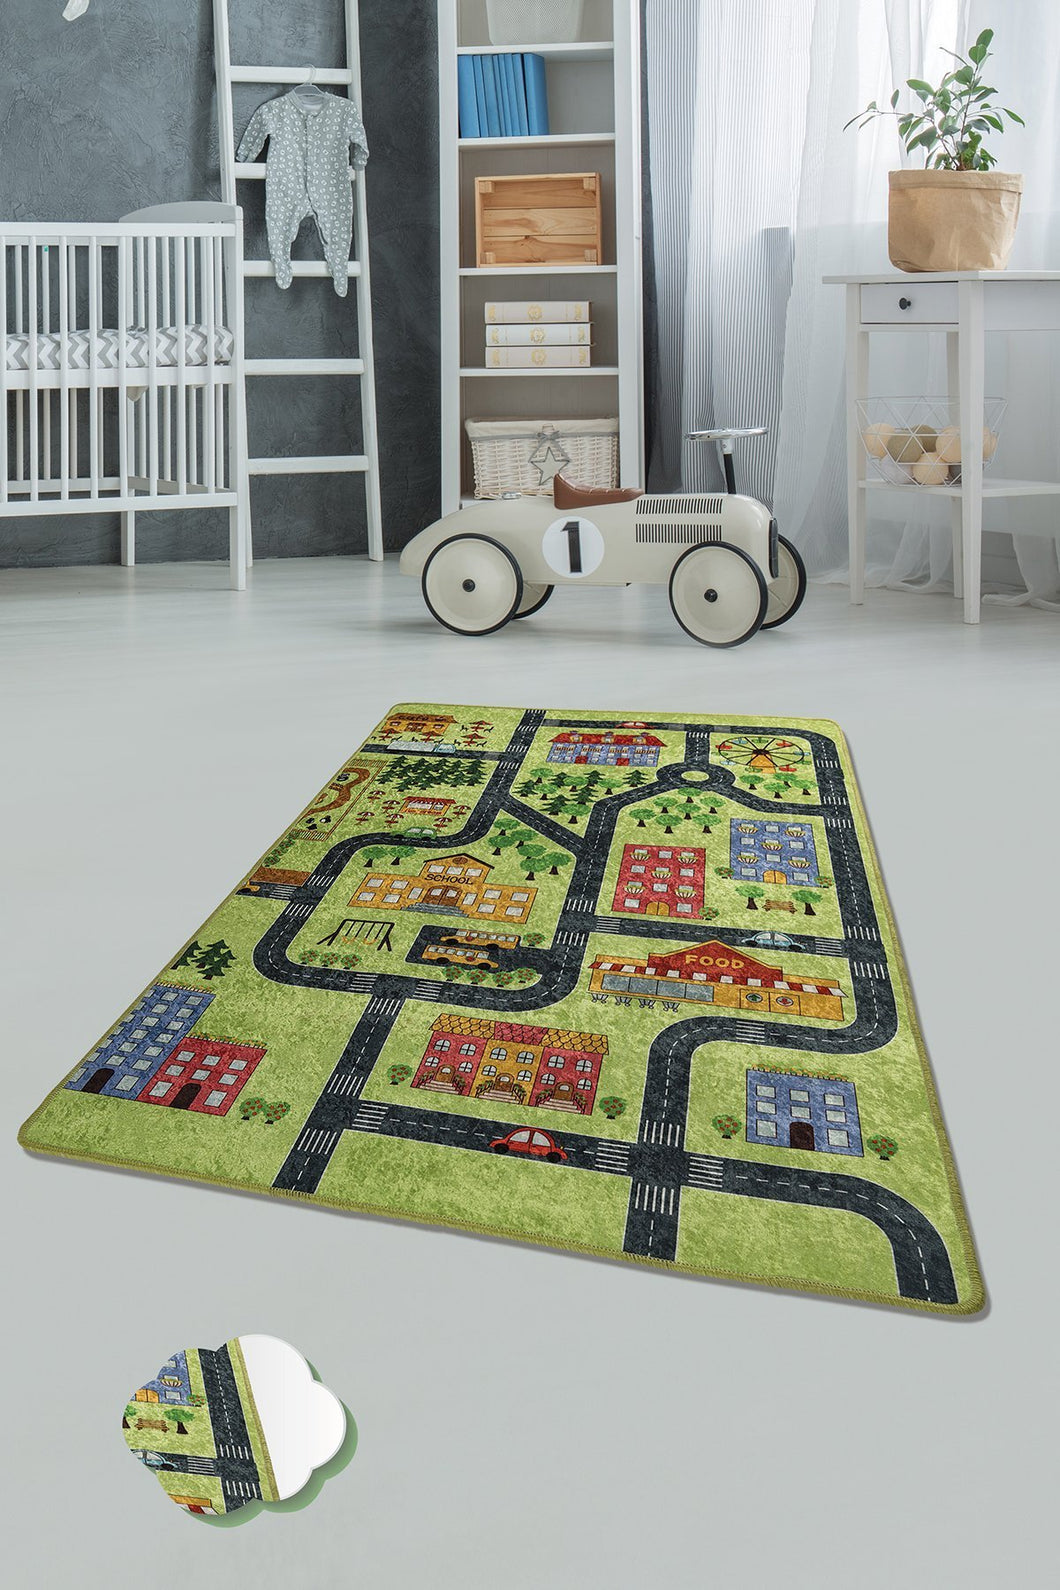 RugstoreX Small Town Green Rugs for kids Highway  3'x 5' 39